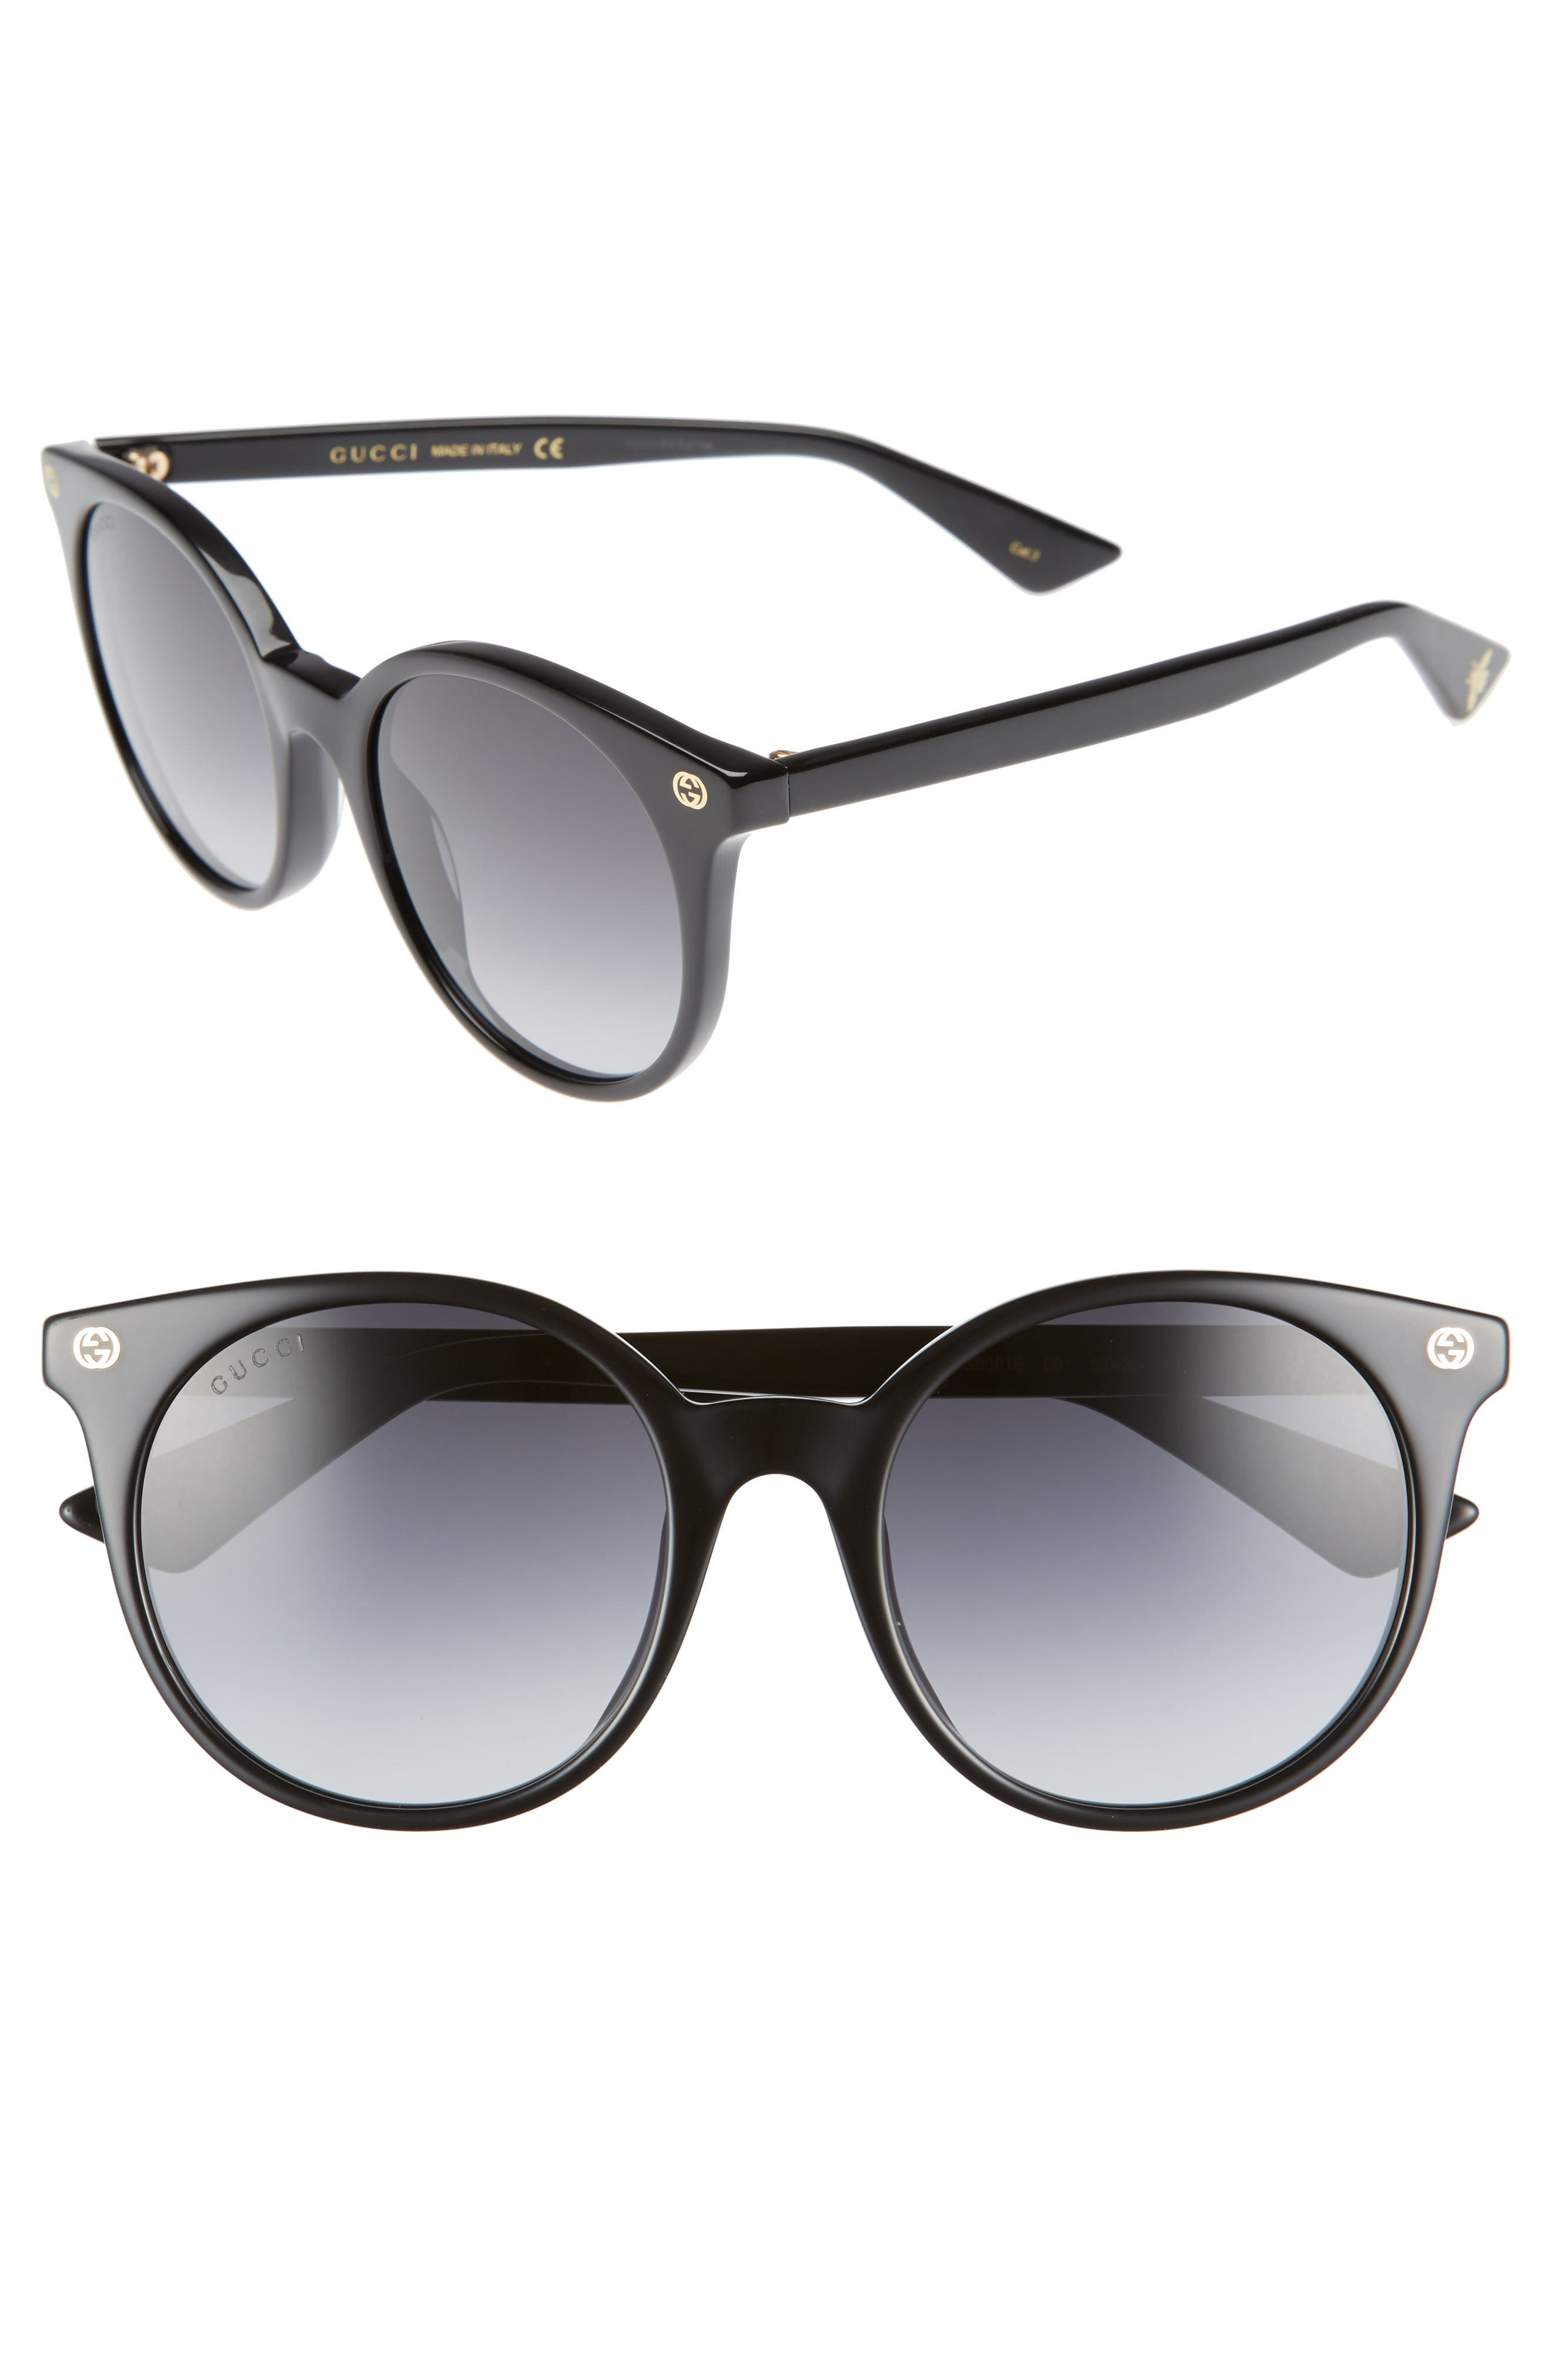 52mm Round Sunglasses,                         Main,                         color, Black/ Grey